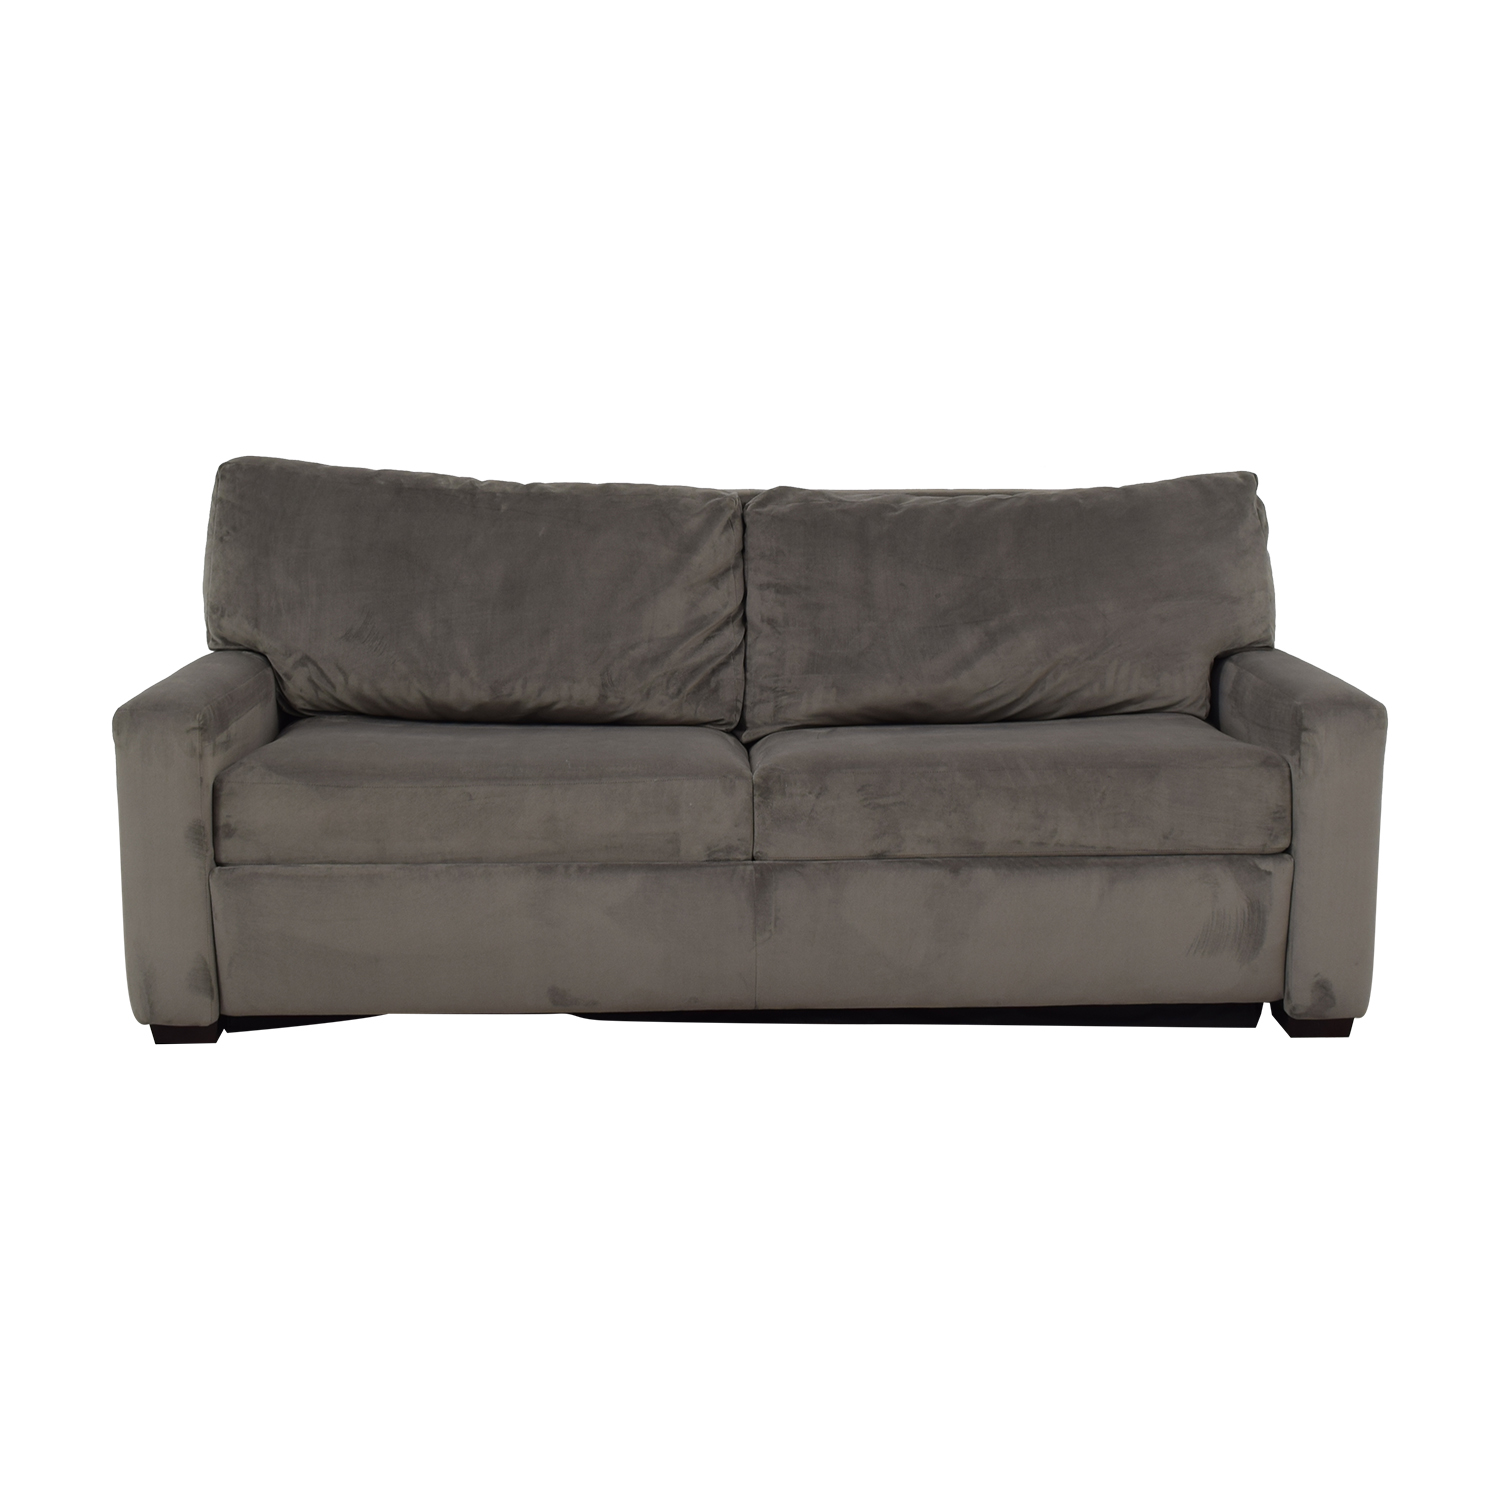 American Leather American Leather Cassidy Comfort Queen Sleeper Sofa grey